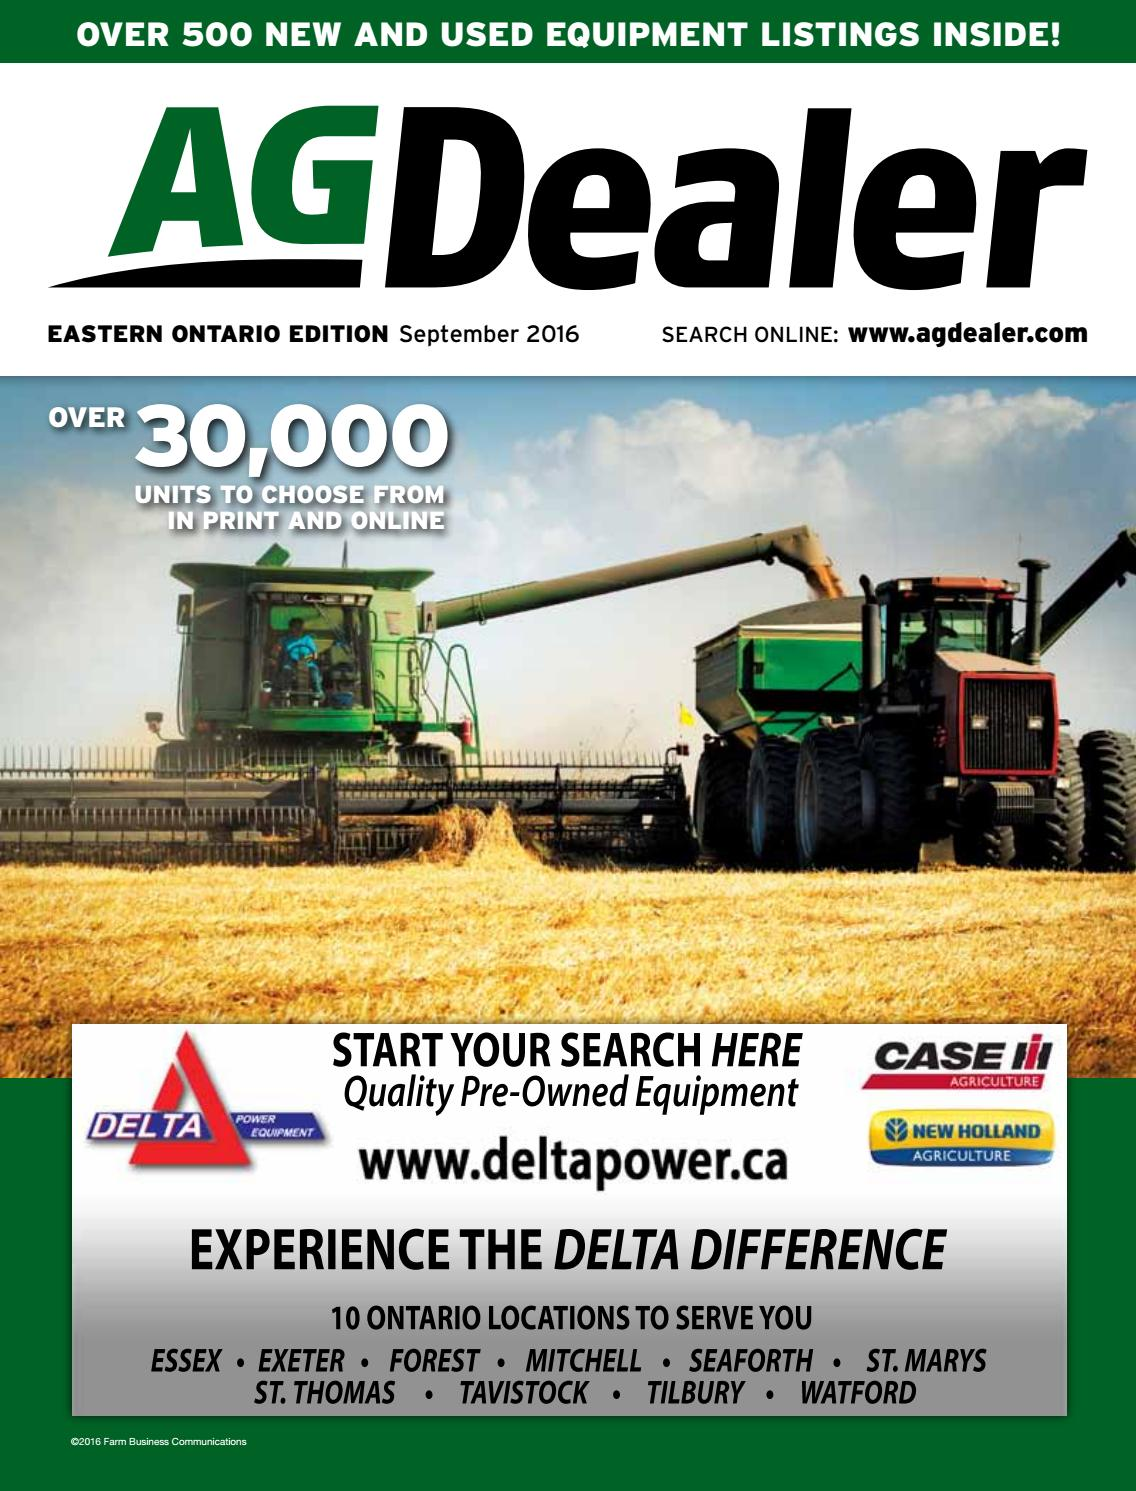 AGDealer Eastern Ontario Edition, September 2016 by Farm